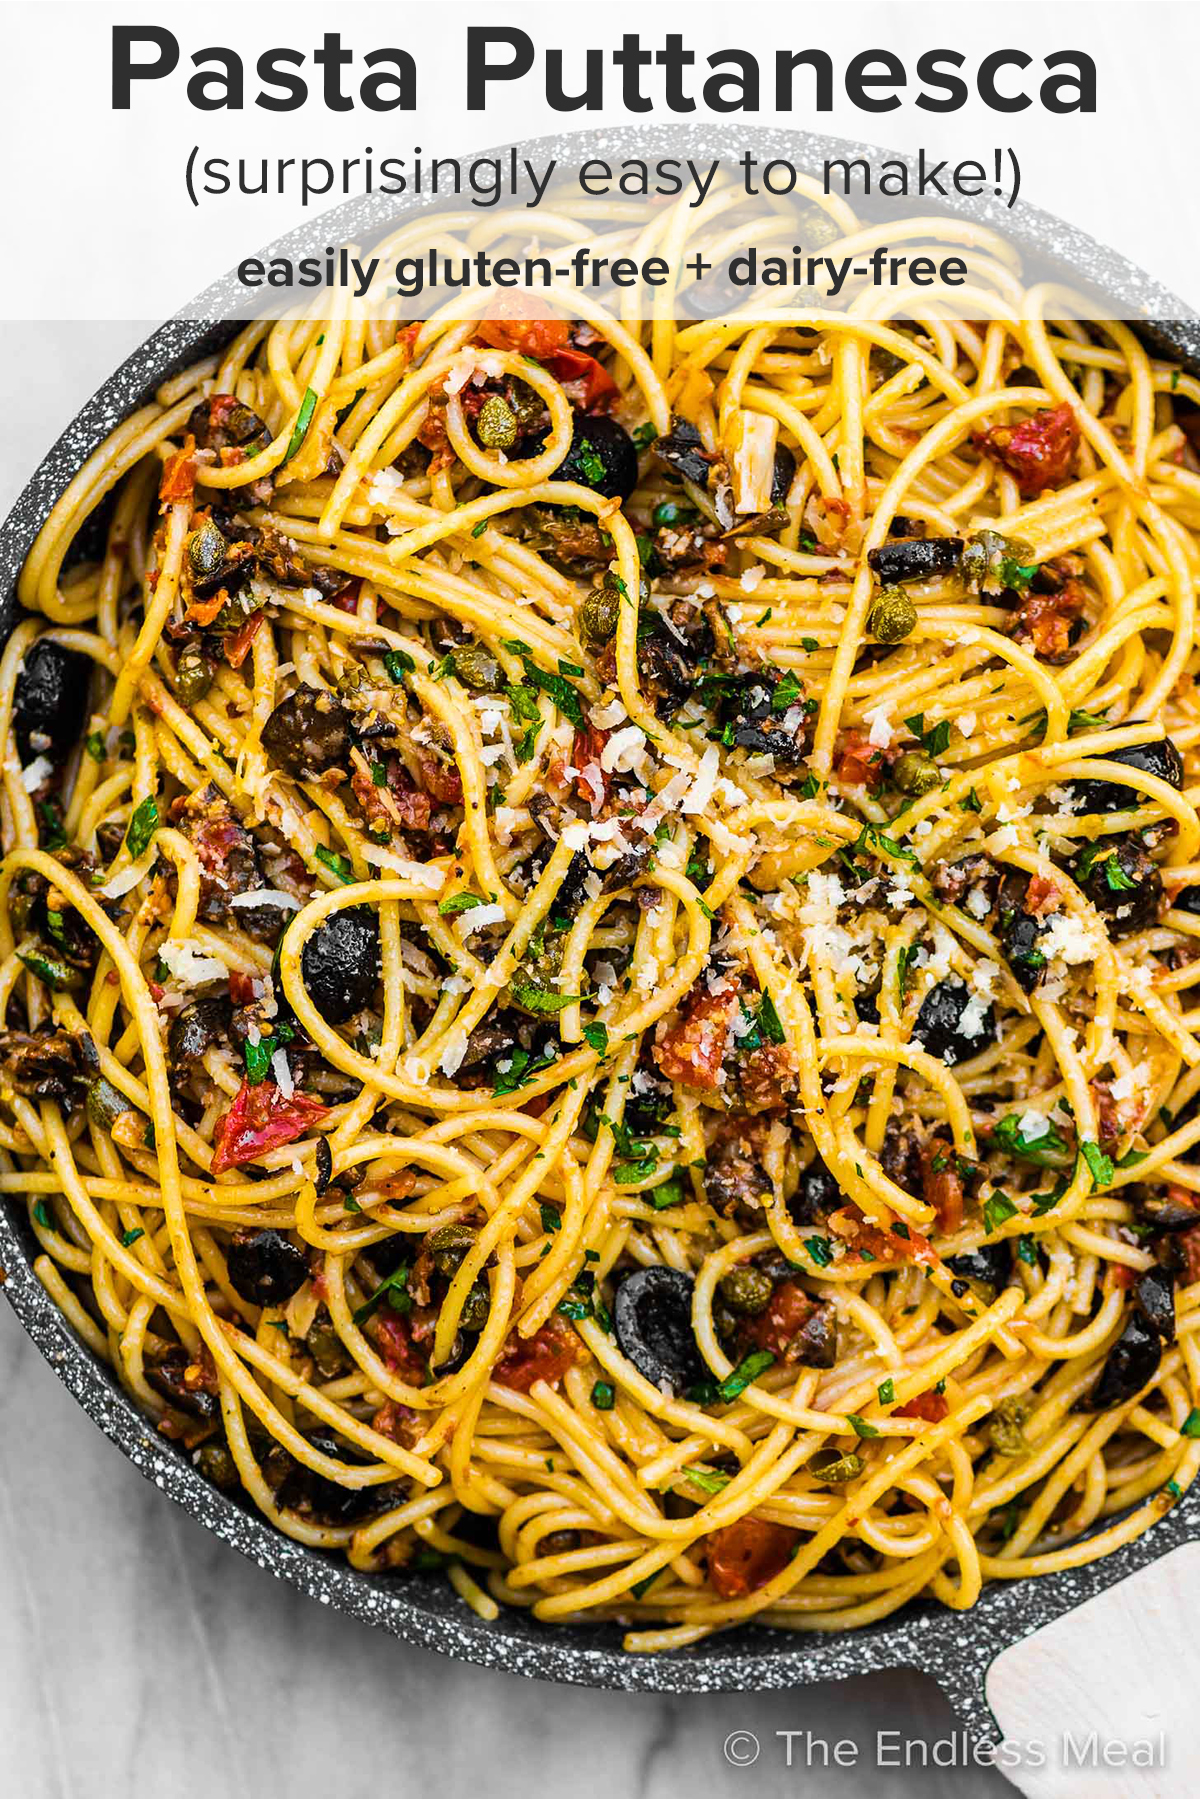 Pasta Puttanesca in a pan with the recipe title on top of the picture.